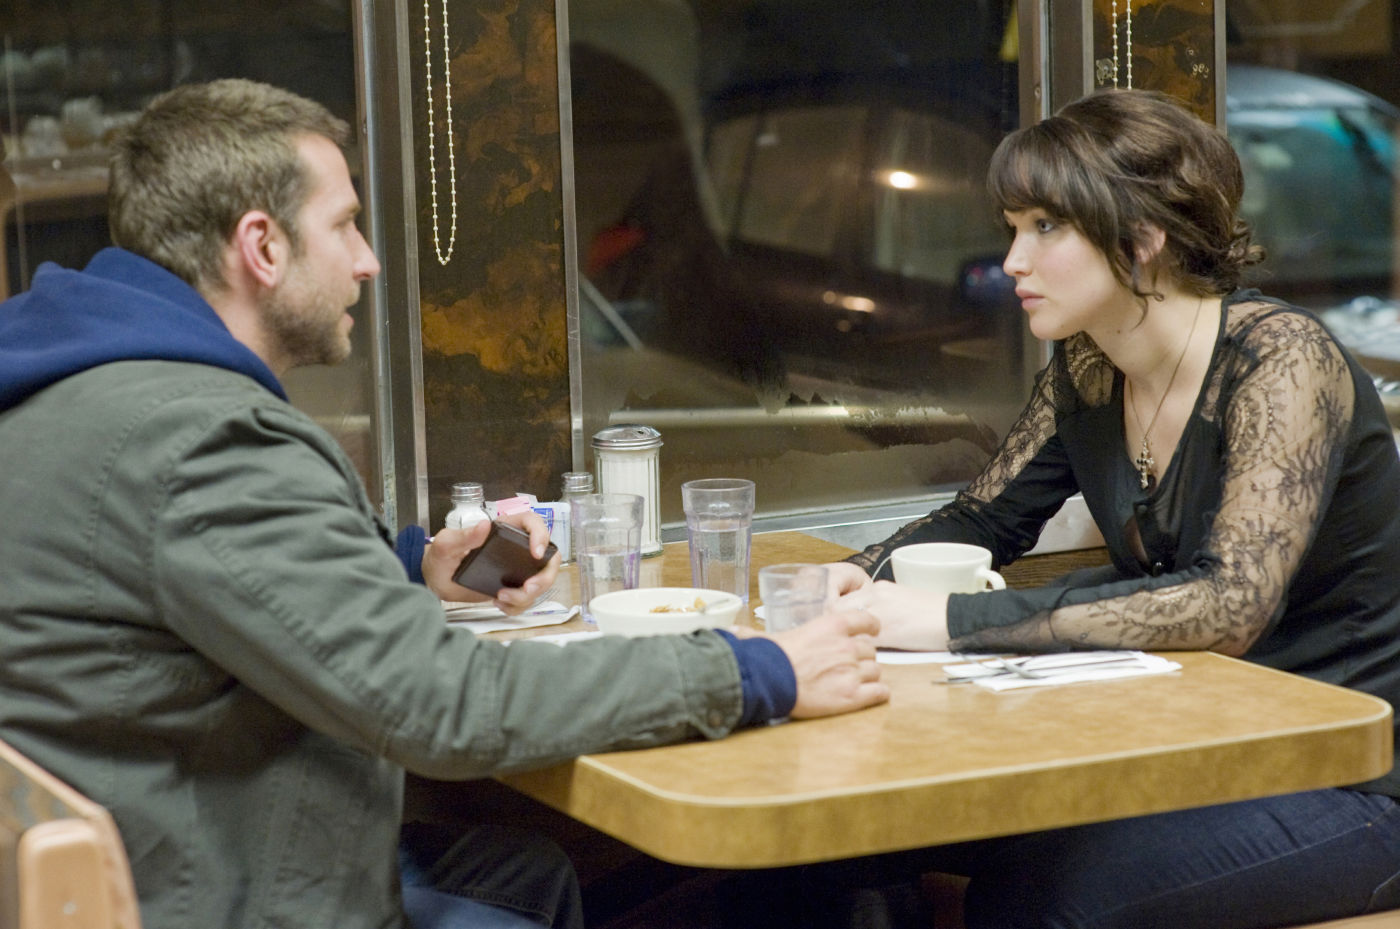 salah satu adegan di film Silver Linings Playbook